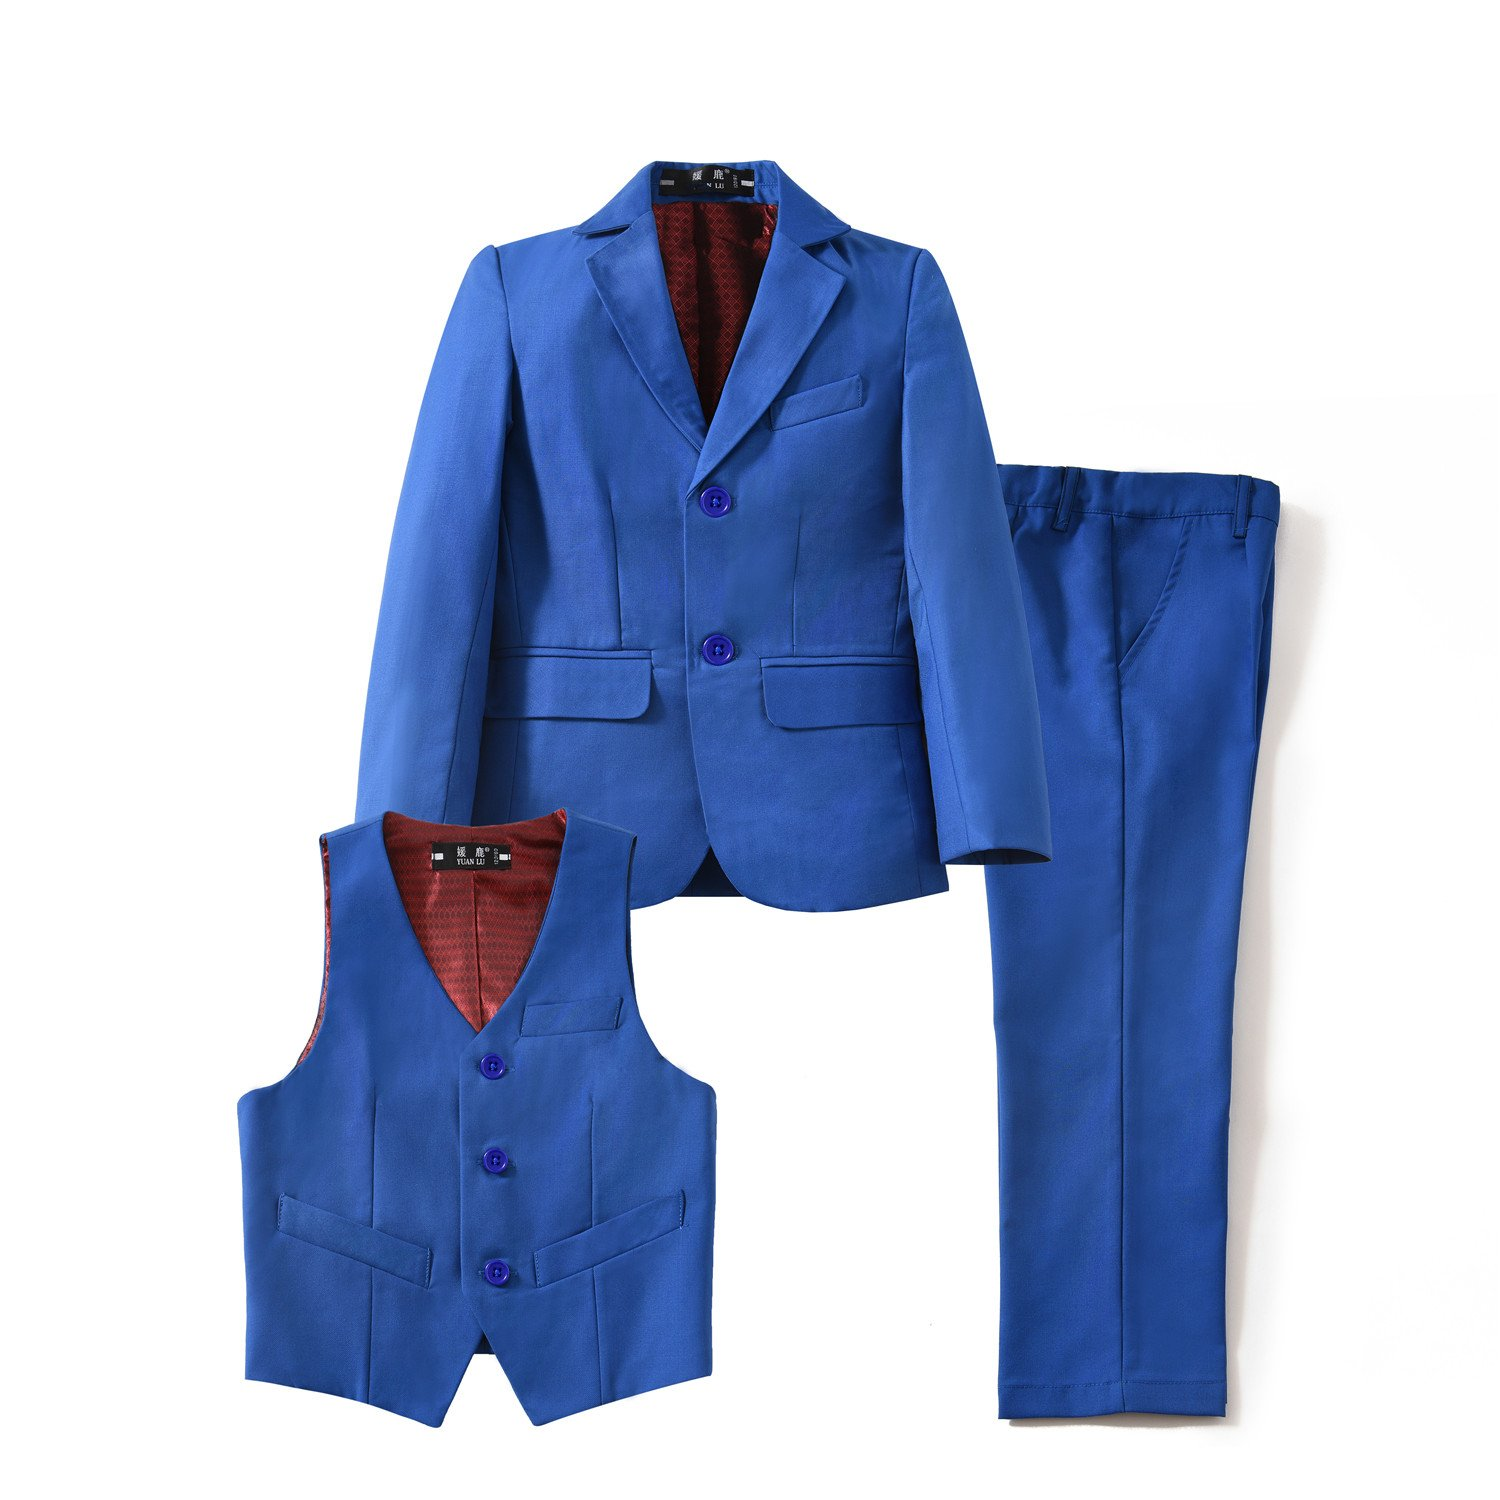 Yuanlu Kids Boys' Suts Set with Blazer Vest and Pants for Wedding Royal Blue Size 7